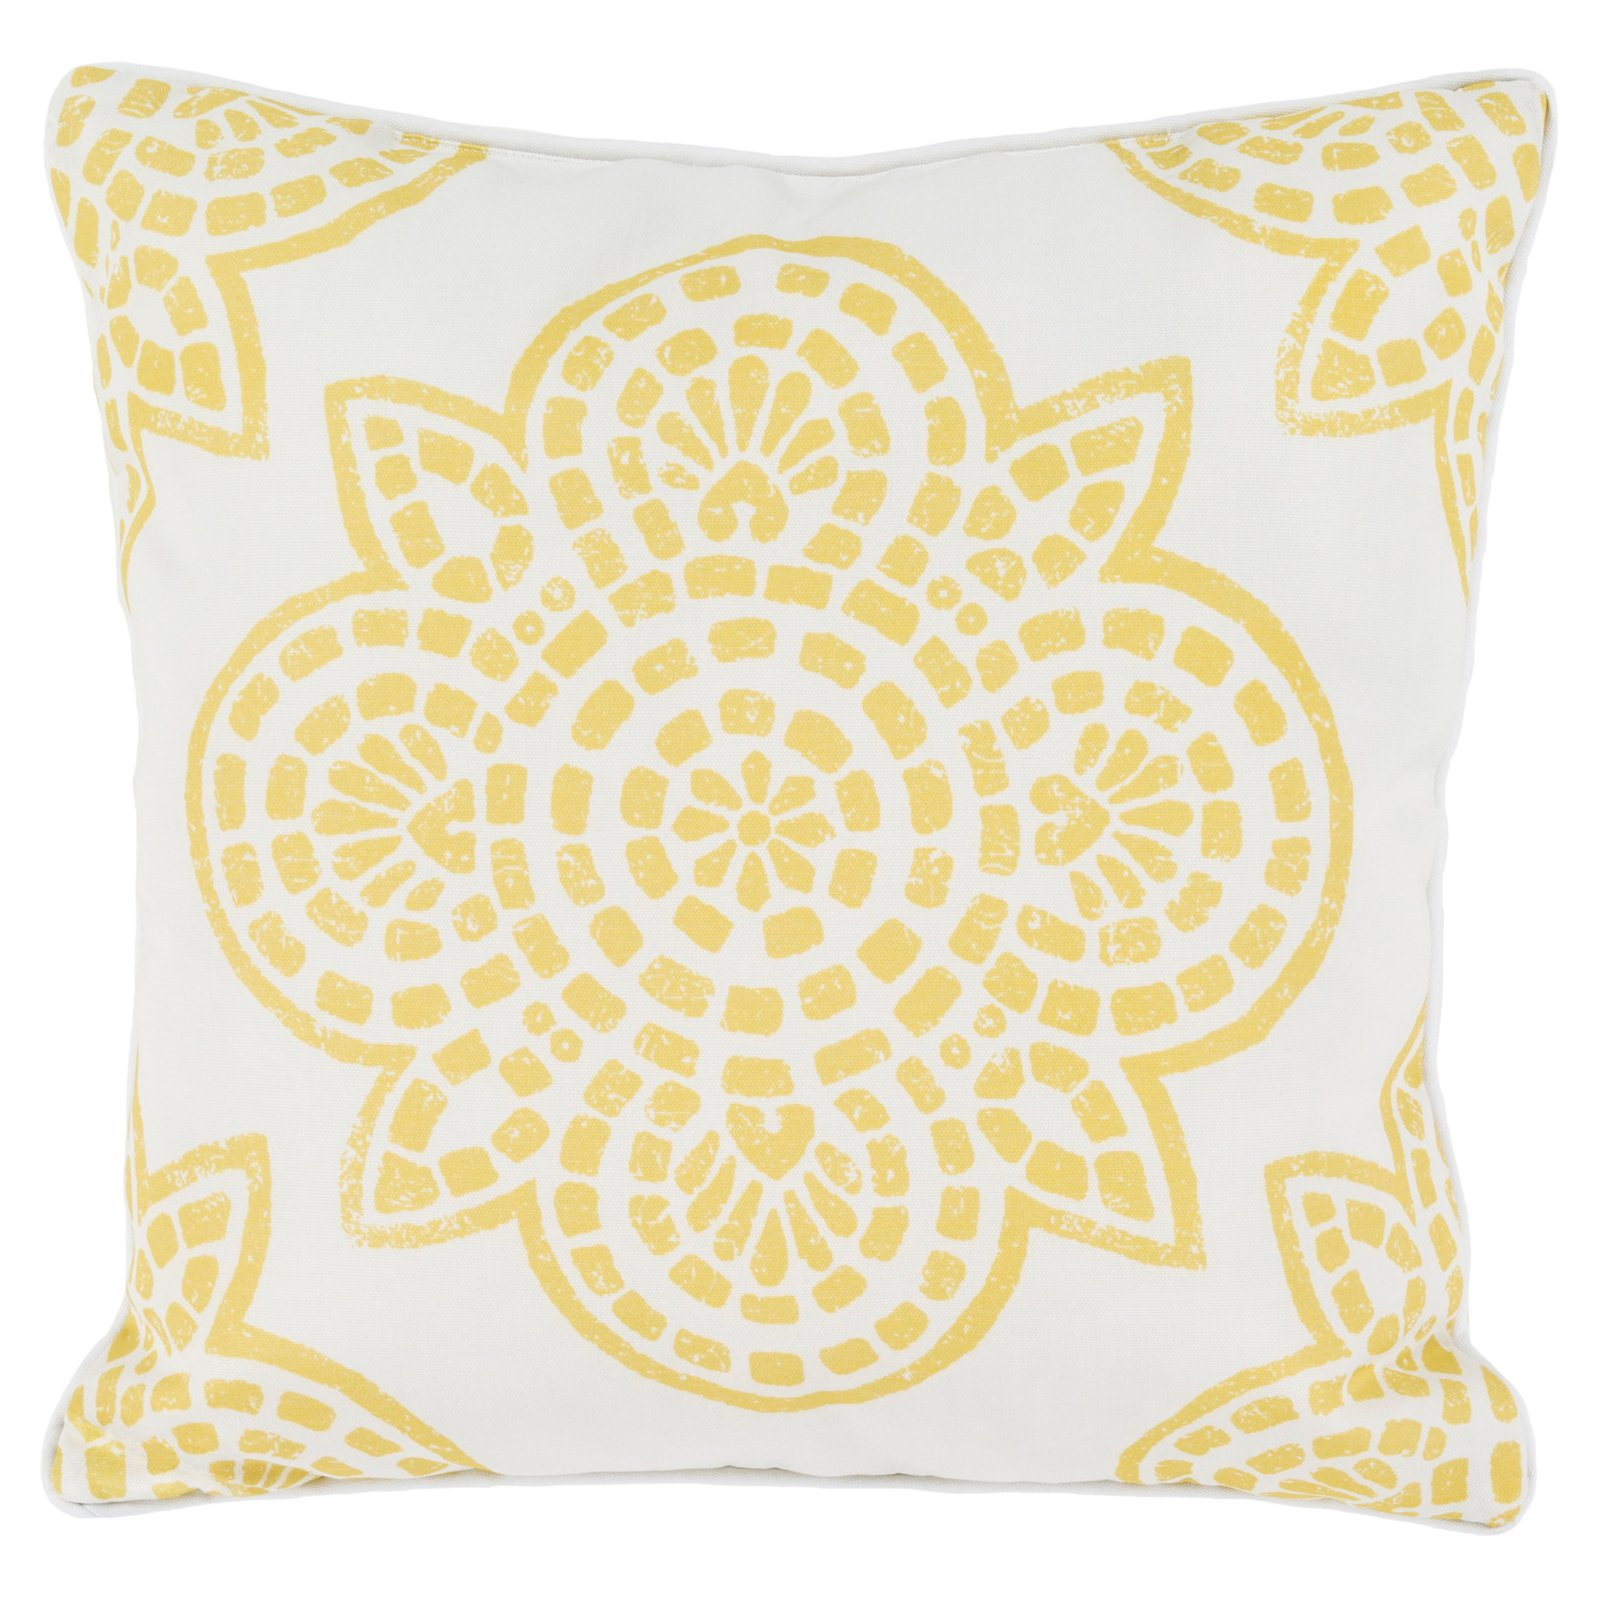 Surya Hemma Indoor/Outdoor Pillow